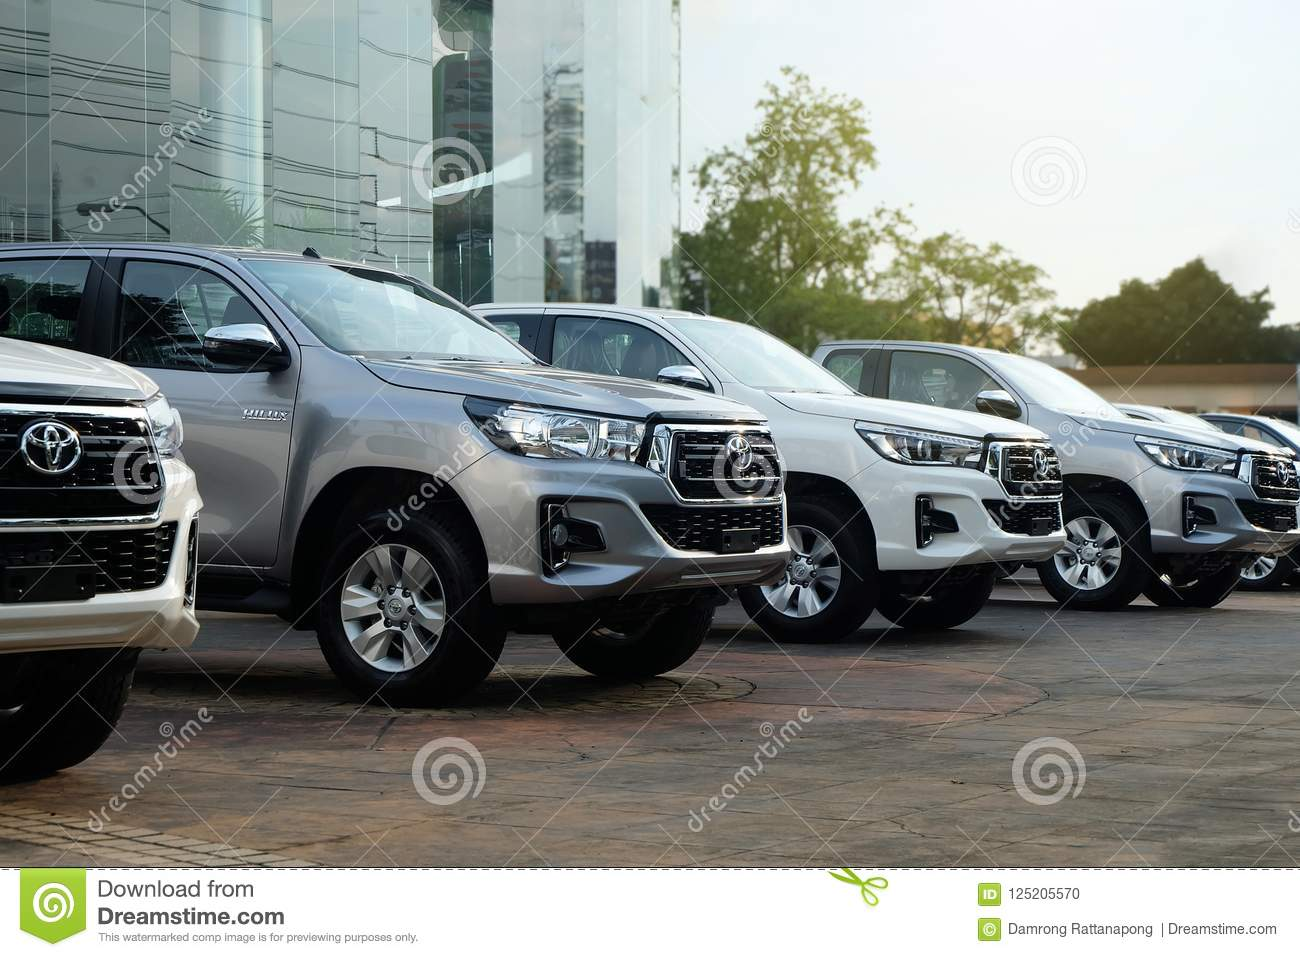 Bangkok, Thailand - May 13, 2018 :Row of New Pickup Trucks For Sale, Toyota Hilux Revo 2018